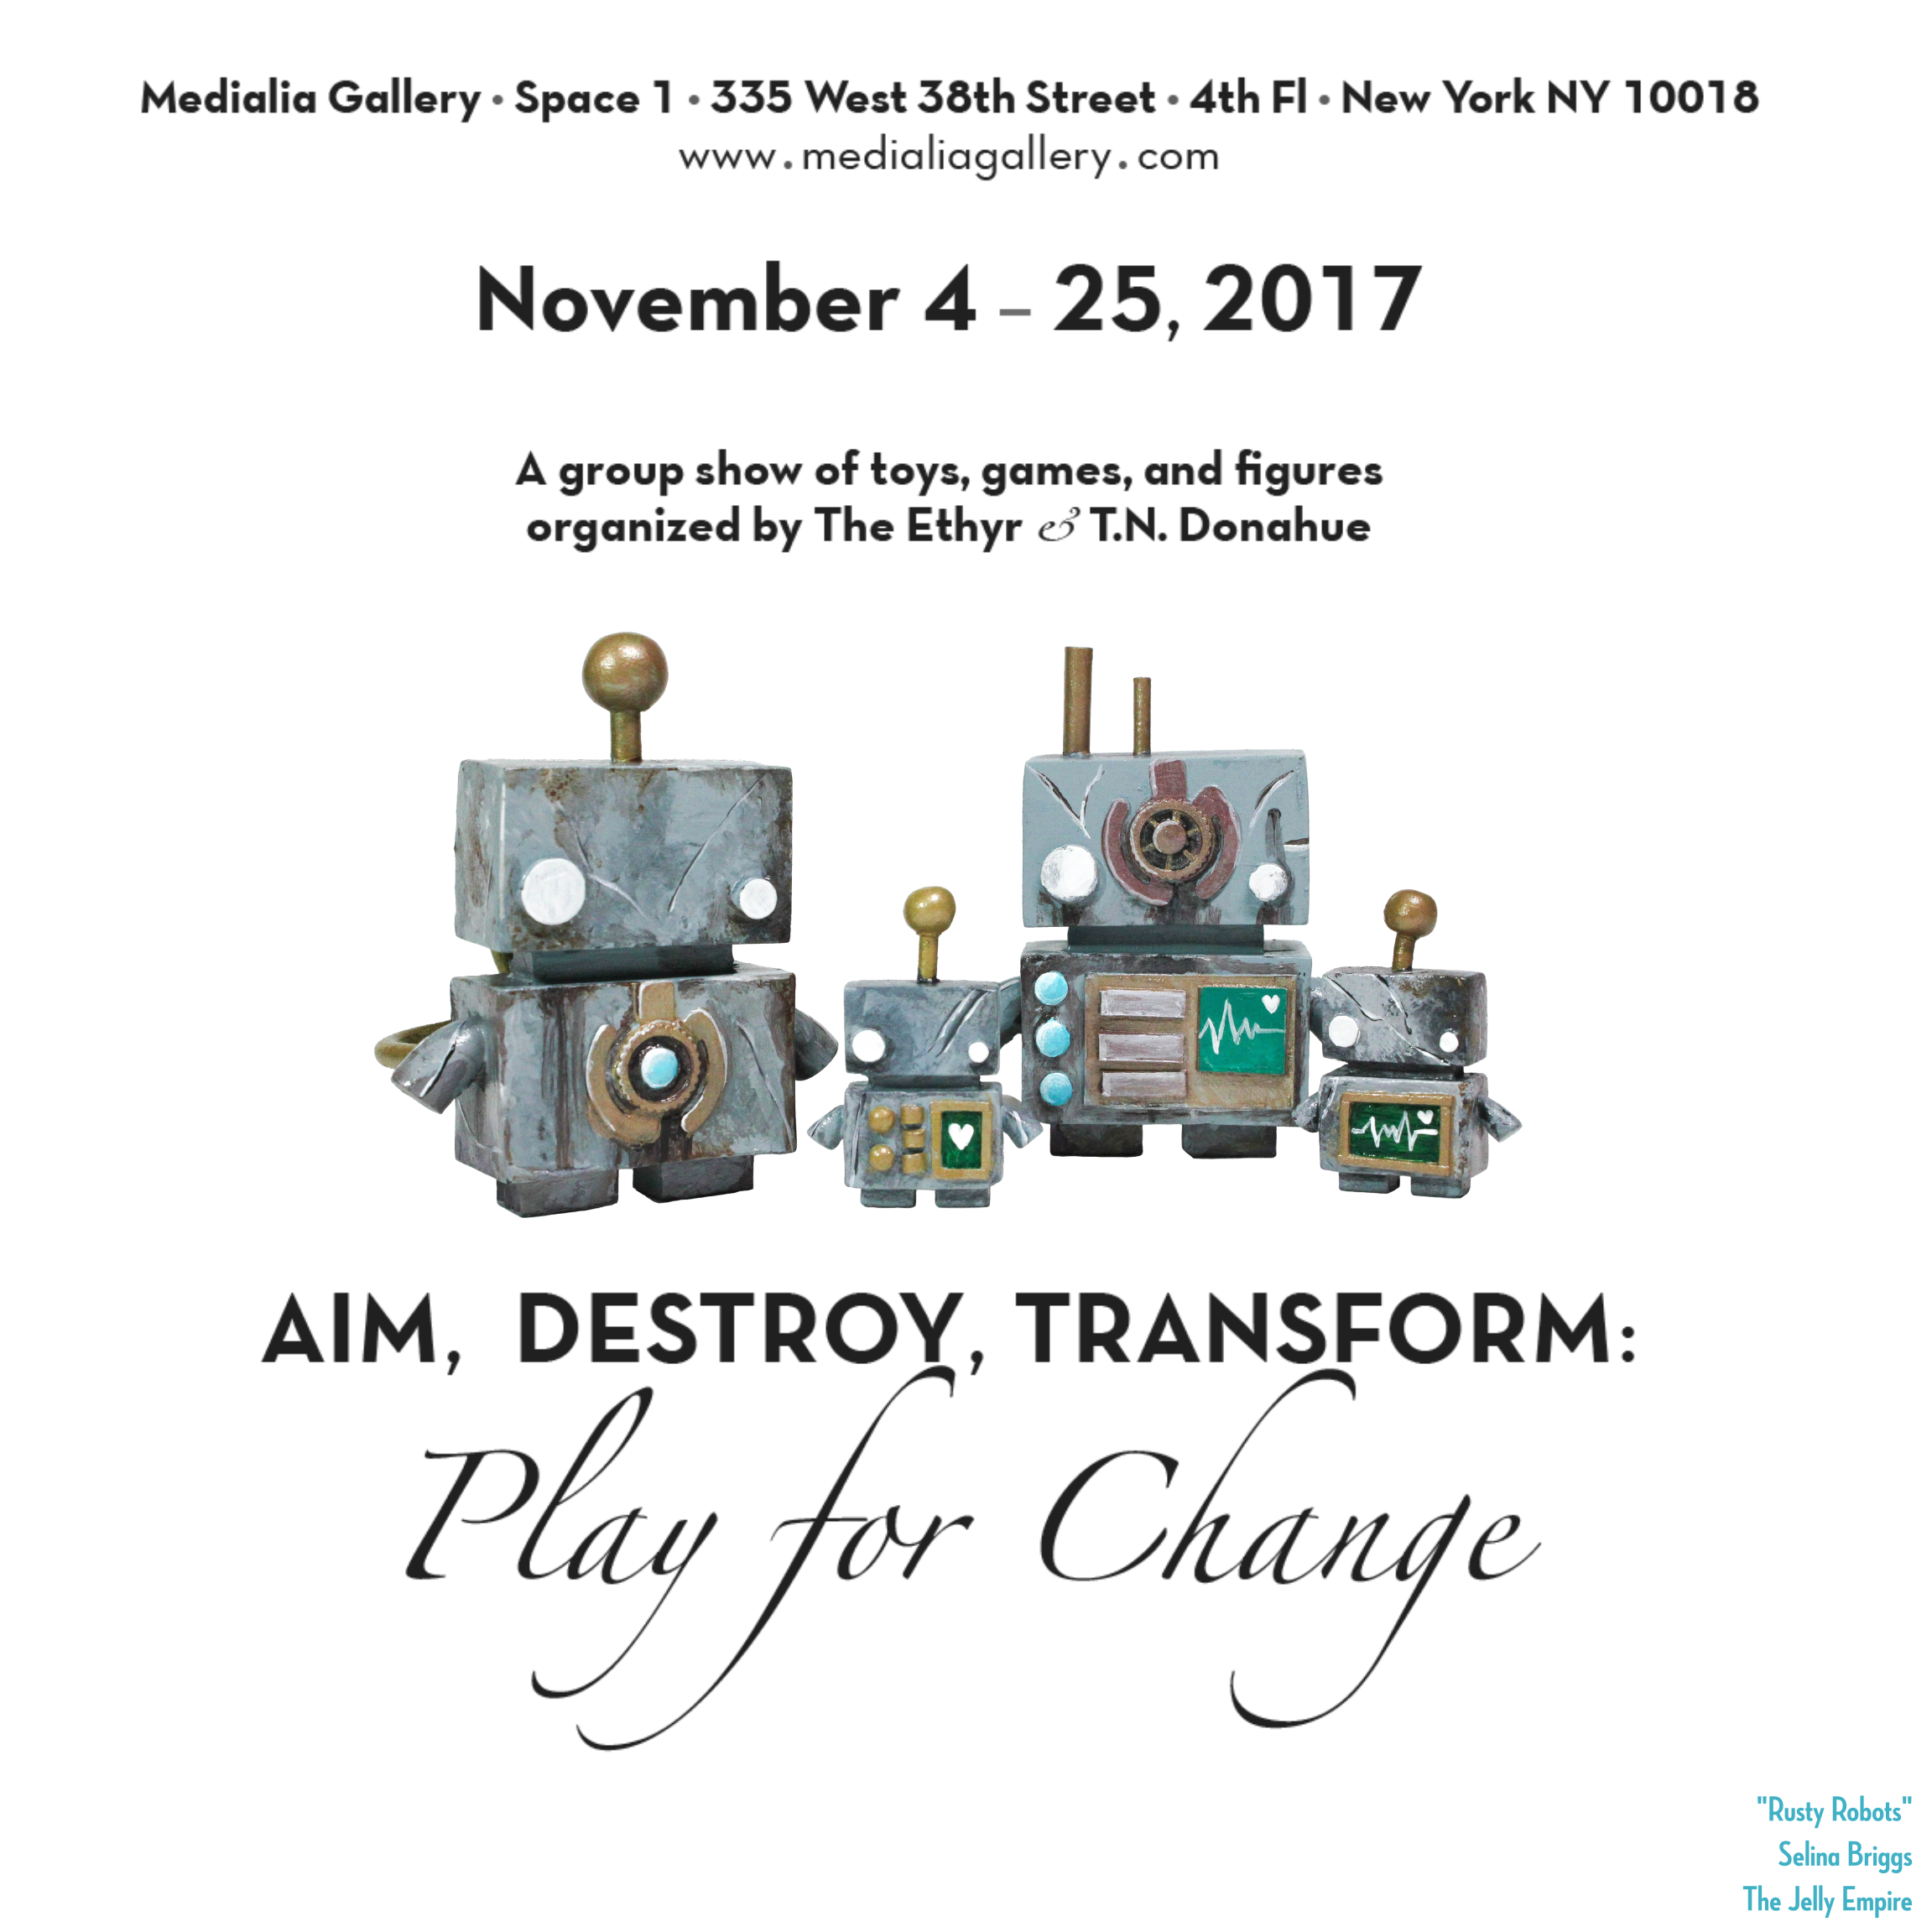 MedialiaGallery_The_Ethyr_AimDestroyTransform_Toy_Show_announcement_The_Jelly_Empire_Robots_Selina_Briggs_November_2017.jpg.png